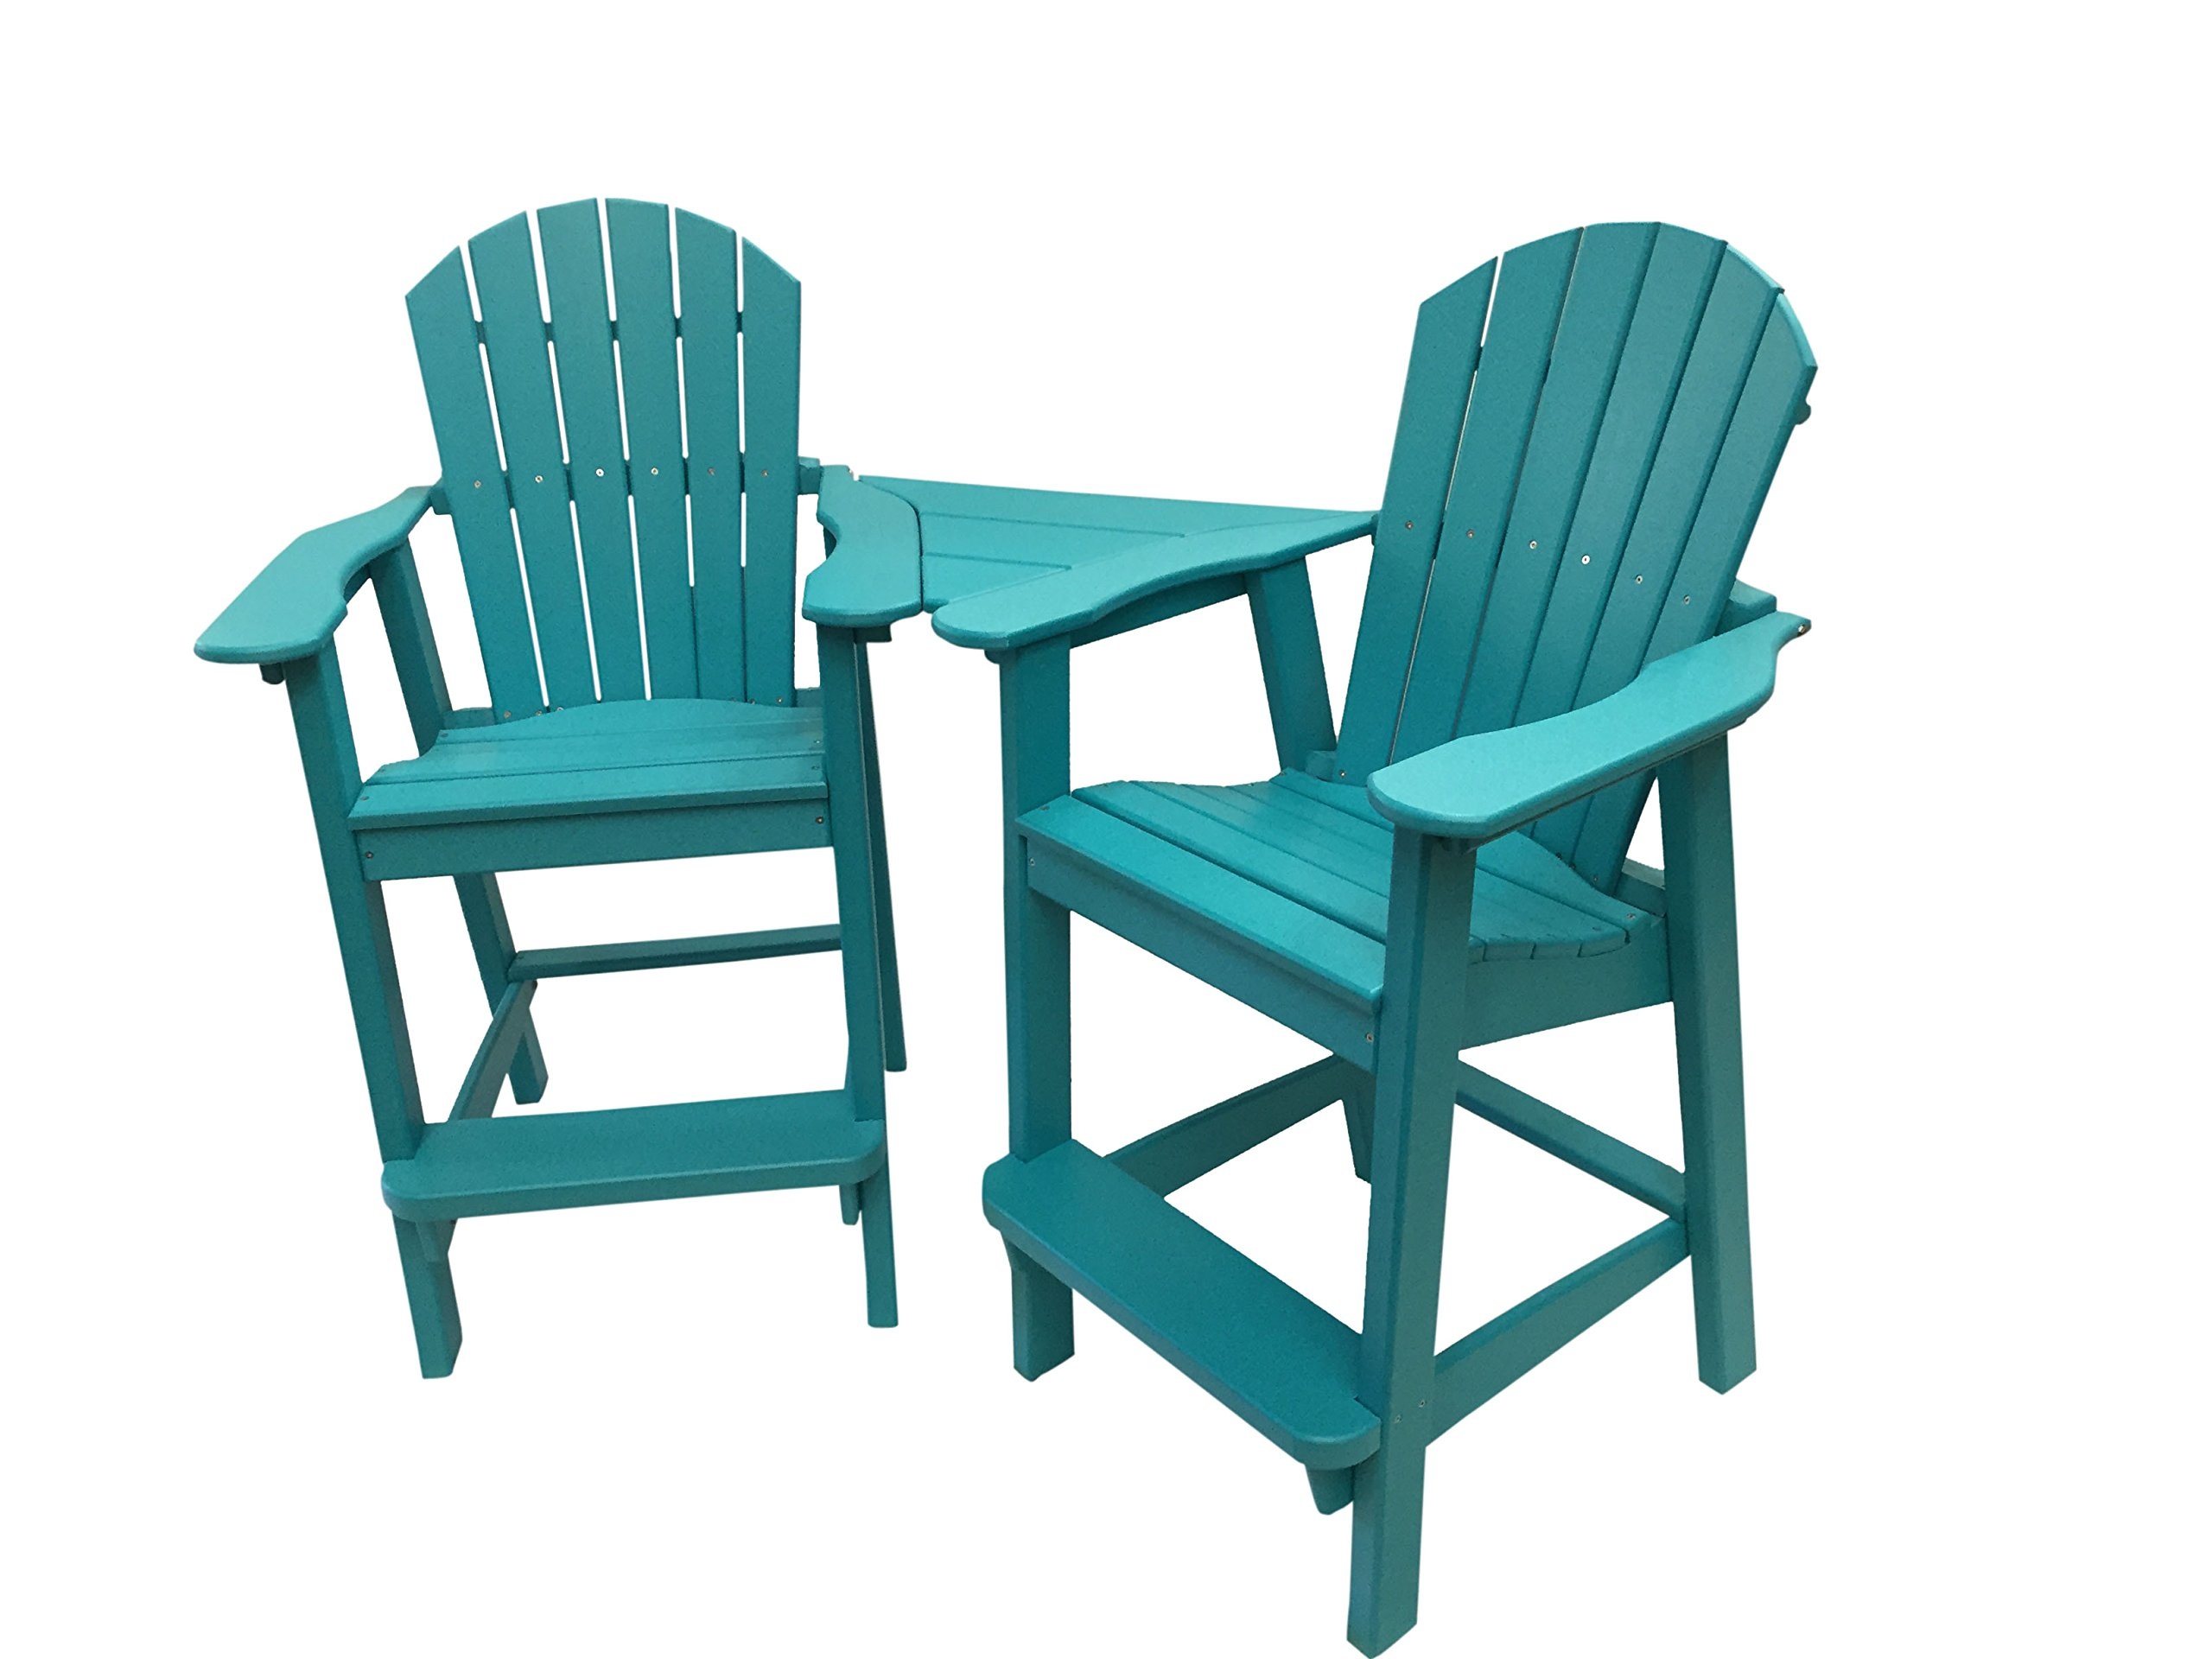 Phat Tommy Recycled Poly Resin Balcony Chair Settee – Durable and Adirondack Patio Furniture, Teal